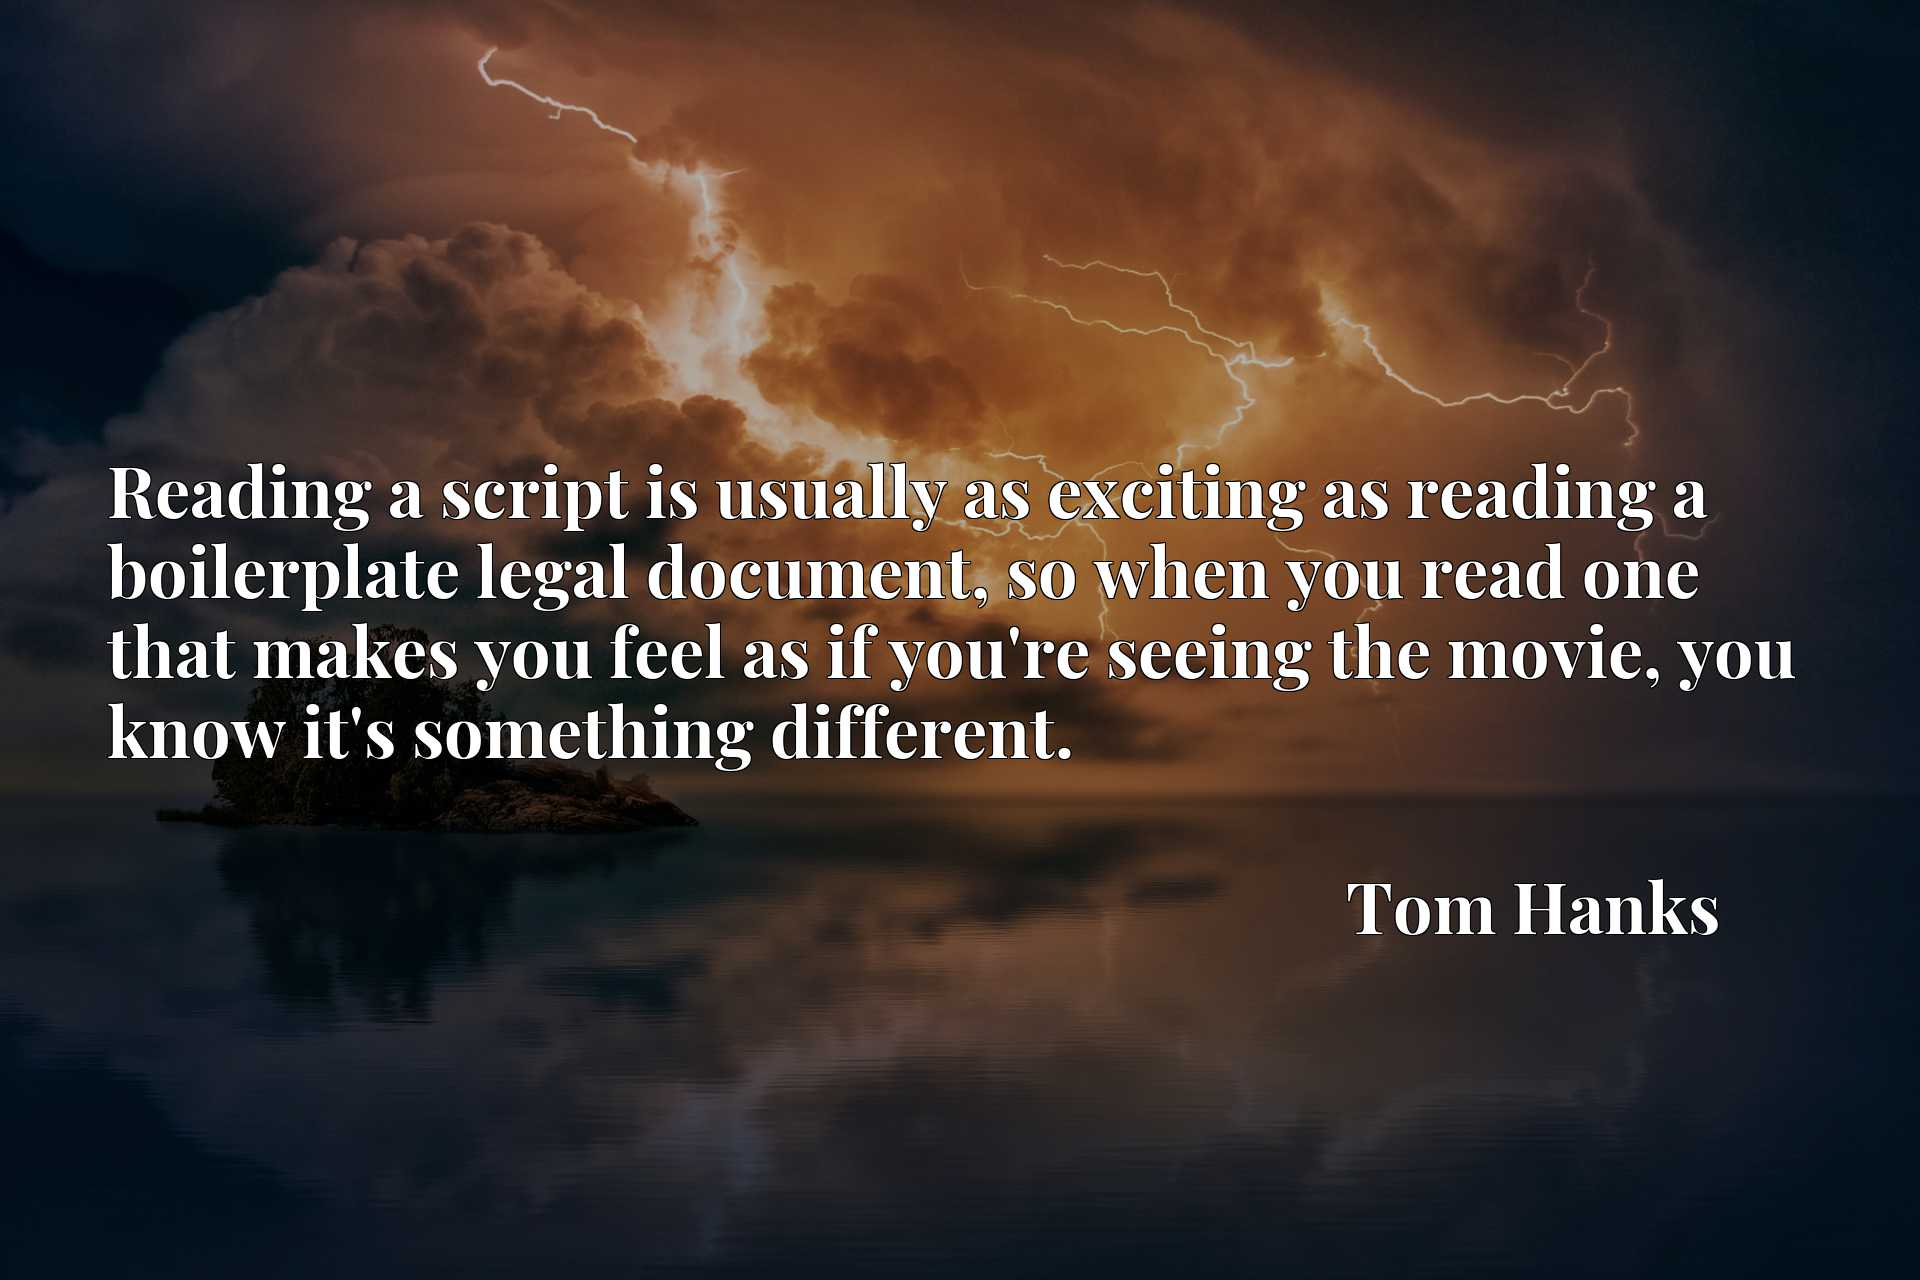 Quote Picture :Reading a script is usually as exciting as reading a boilerplate legal document, so when you read one that makes you feel as if you're seeing the movie, you know it's something different.